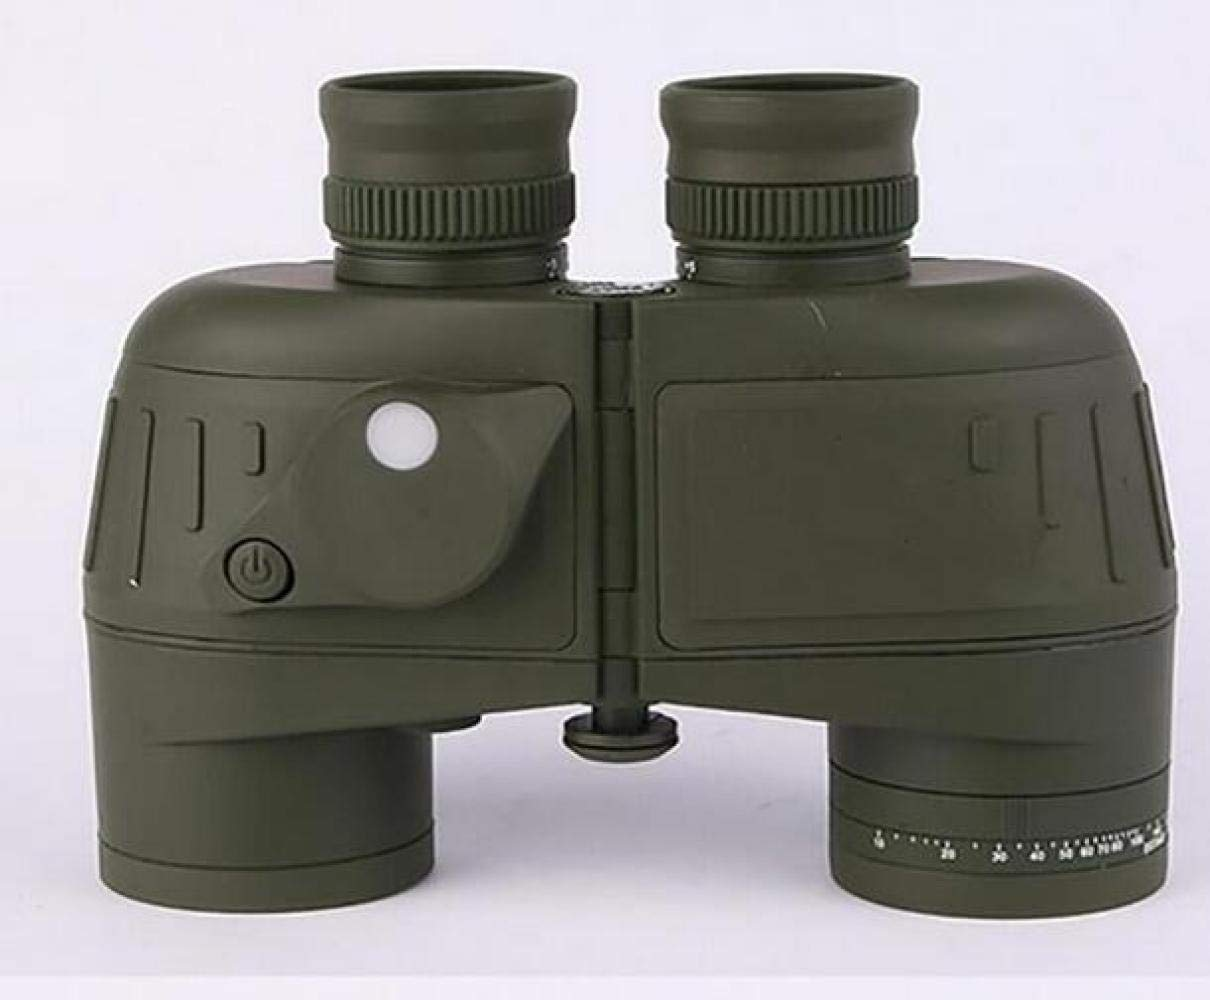 CTO Telescope 7X50 Binoculars Adult and Internal Range Finder Compass Waterproof Army Green Navigation, Boating, Fishing, Water Sports,A,Telescope by CTO (Image #1)